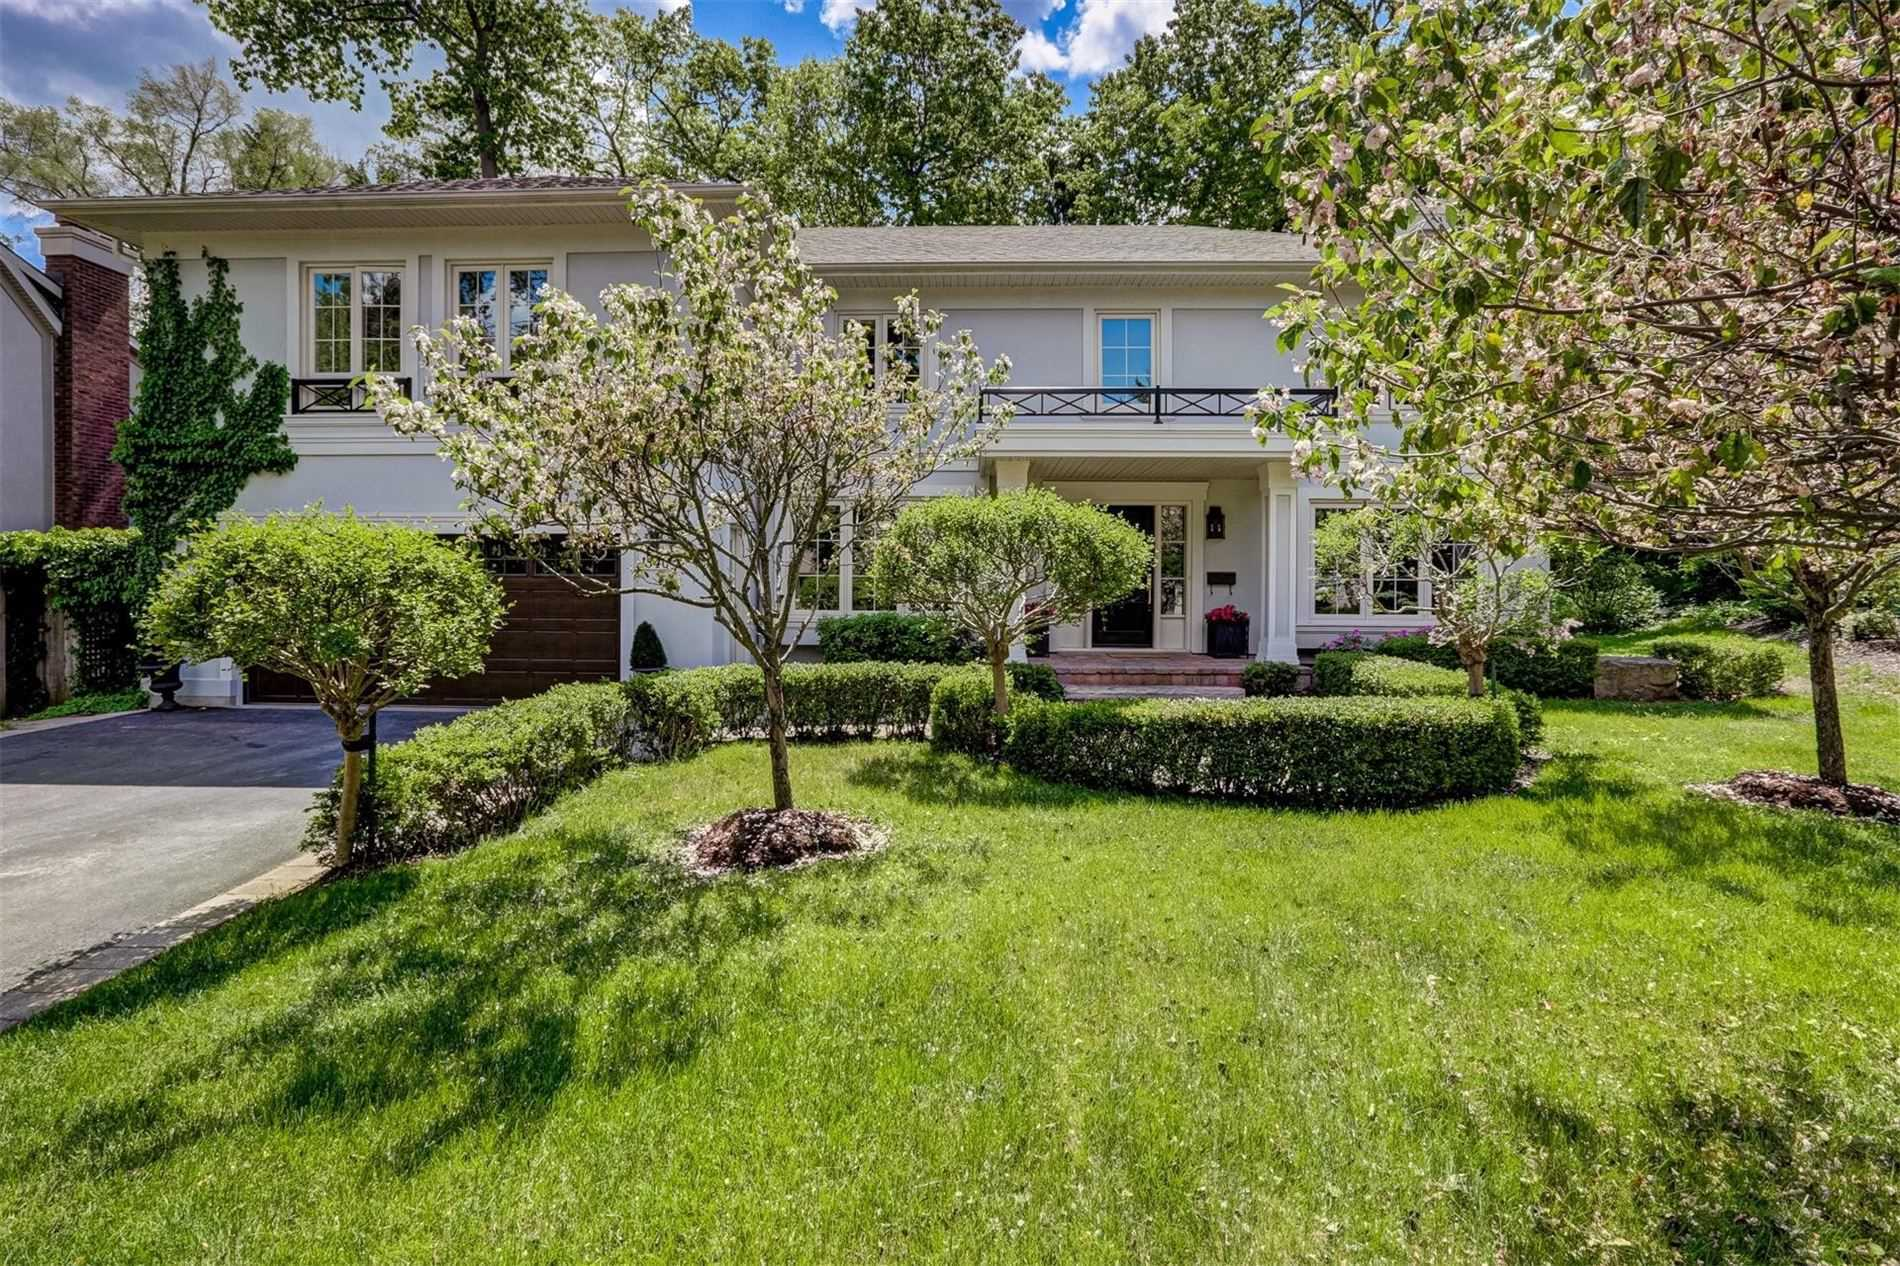 1540 Point-O-Woods Rd, Mississauga